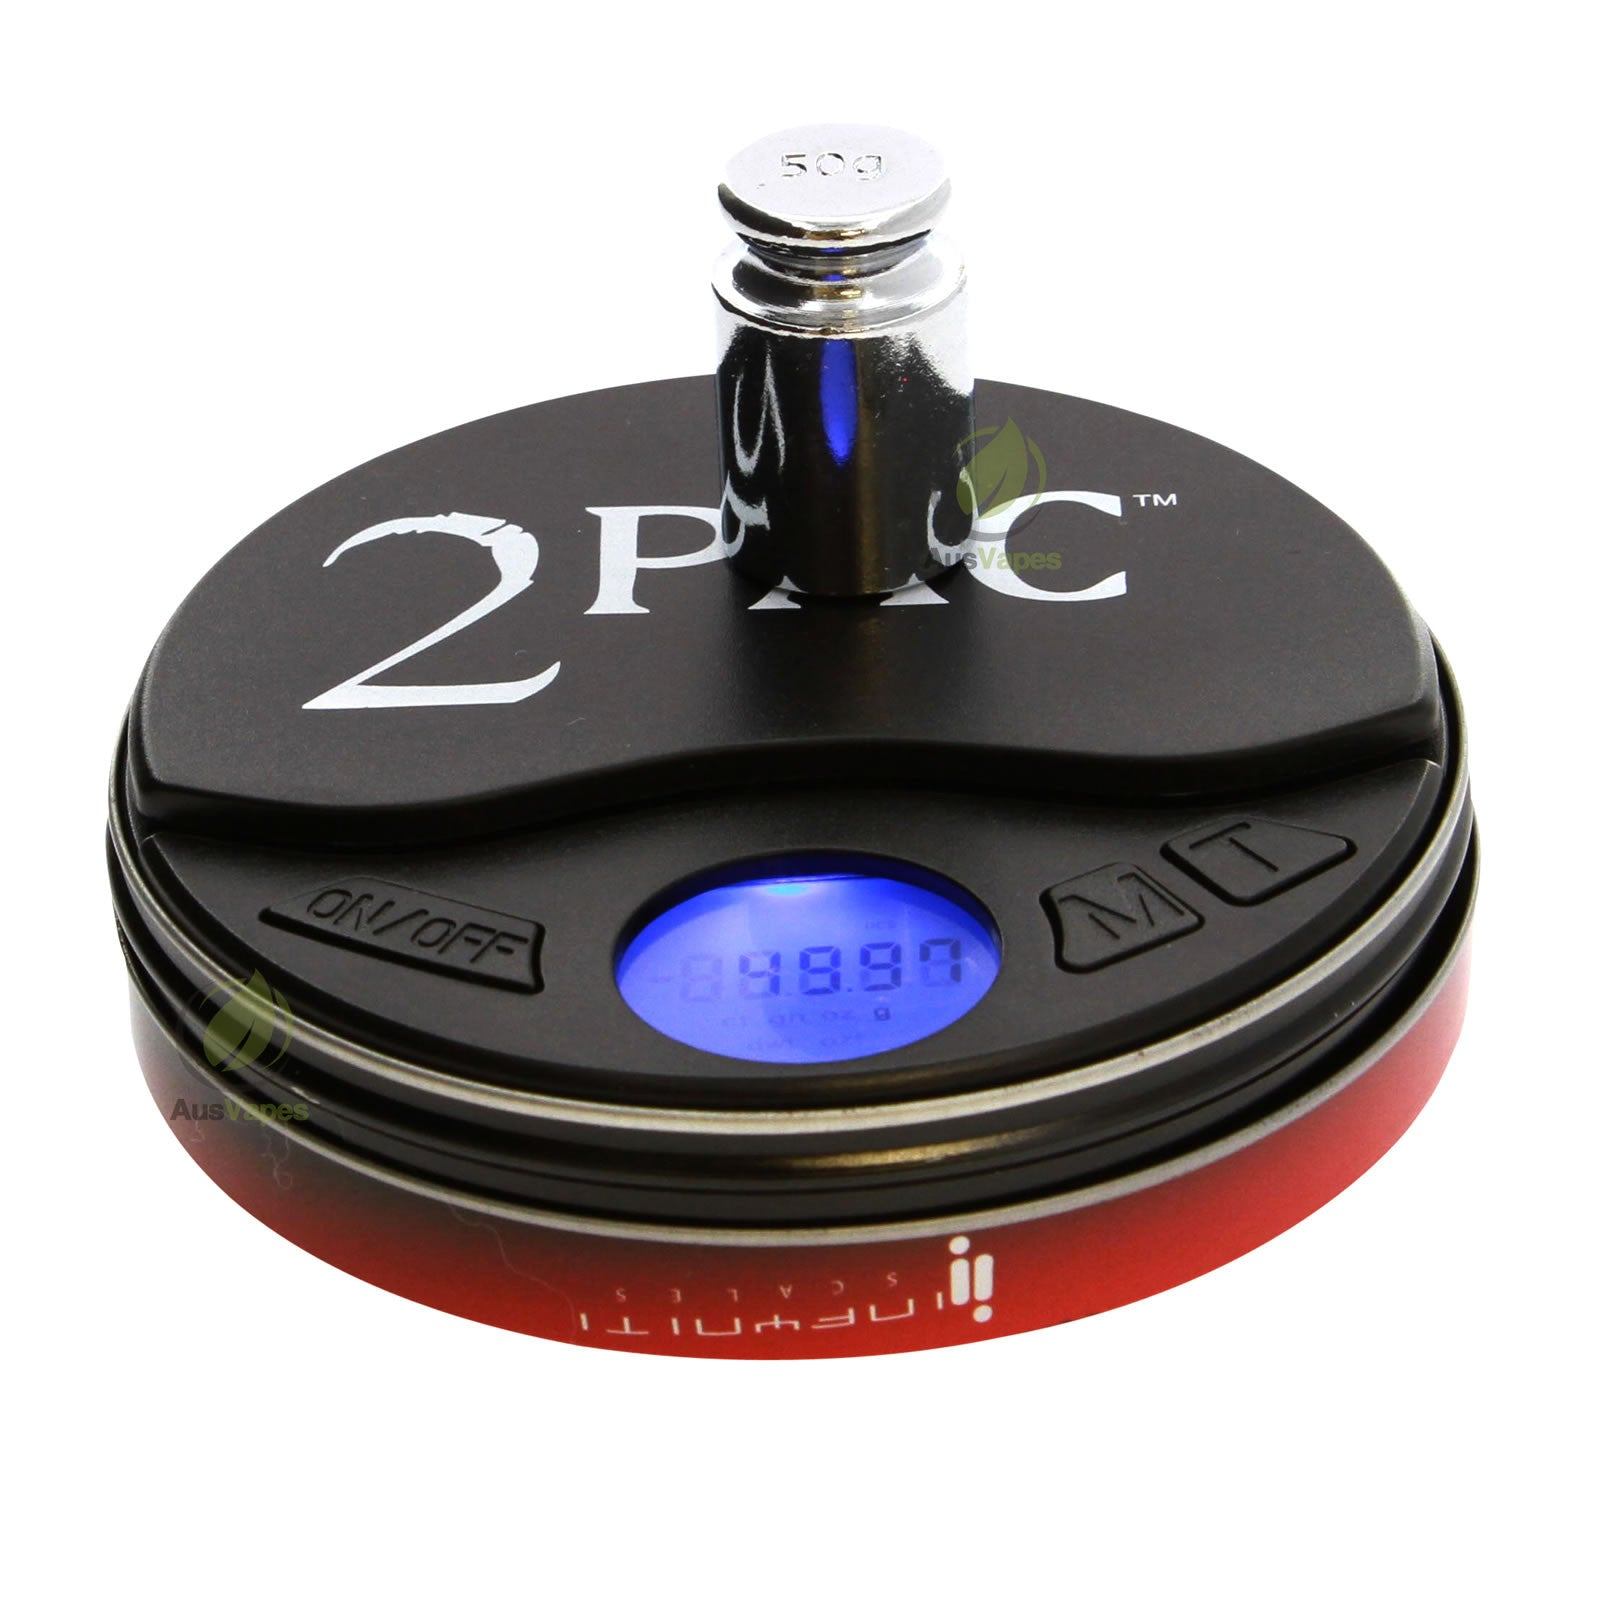 DISCONTINUED Infyniti Tupac Eclipse Digital Scale 100g x 0.01g